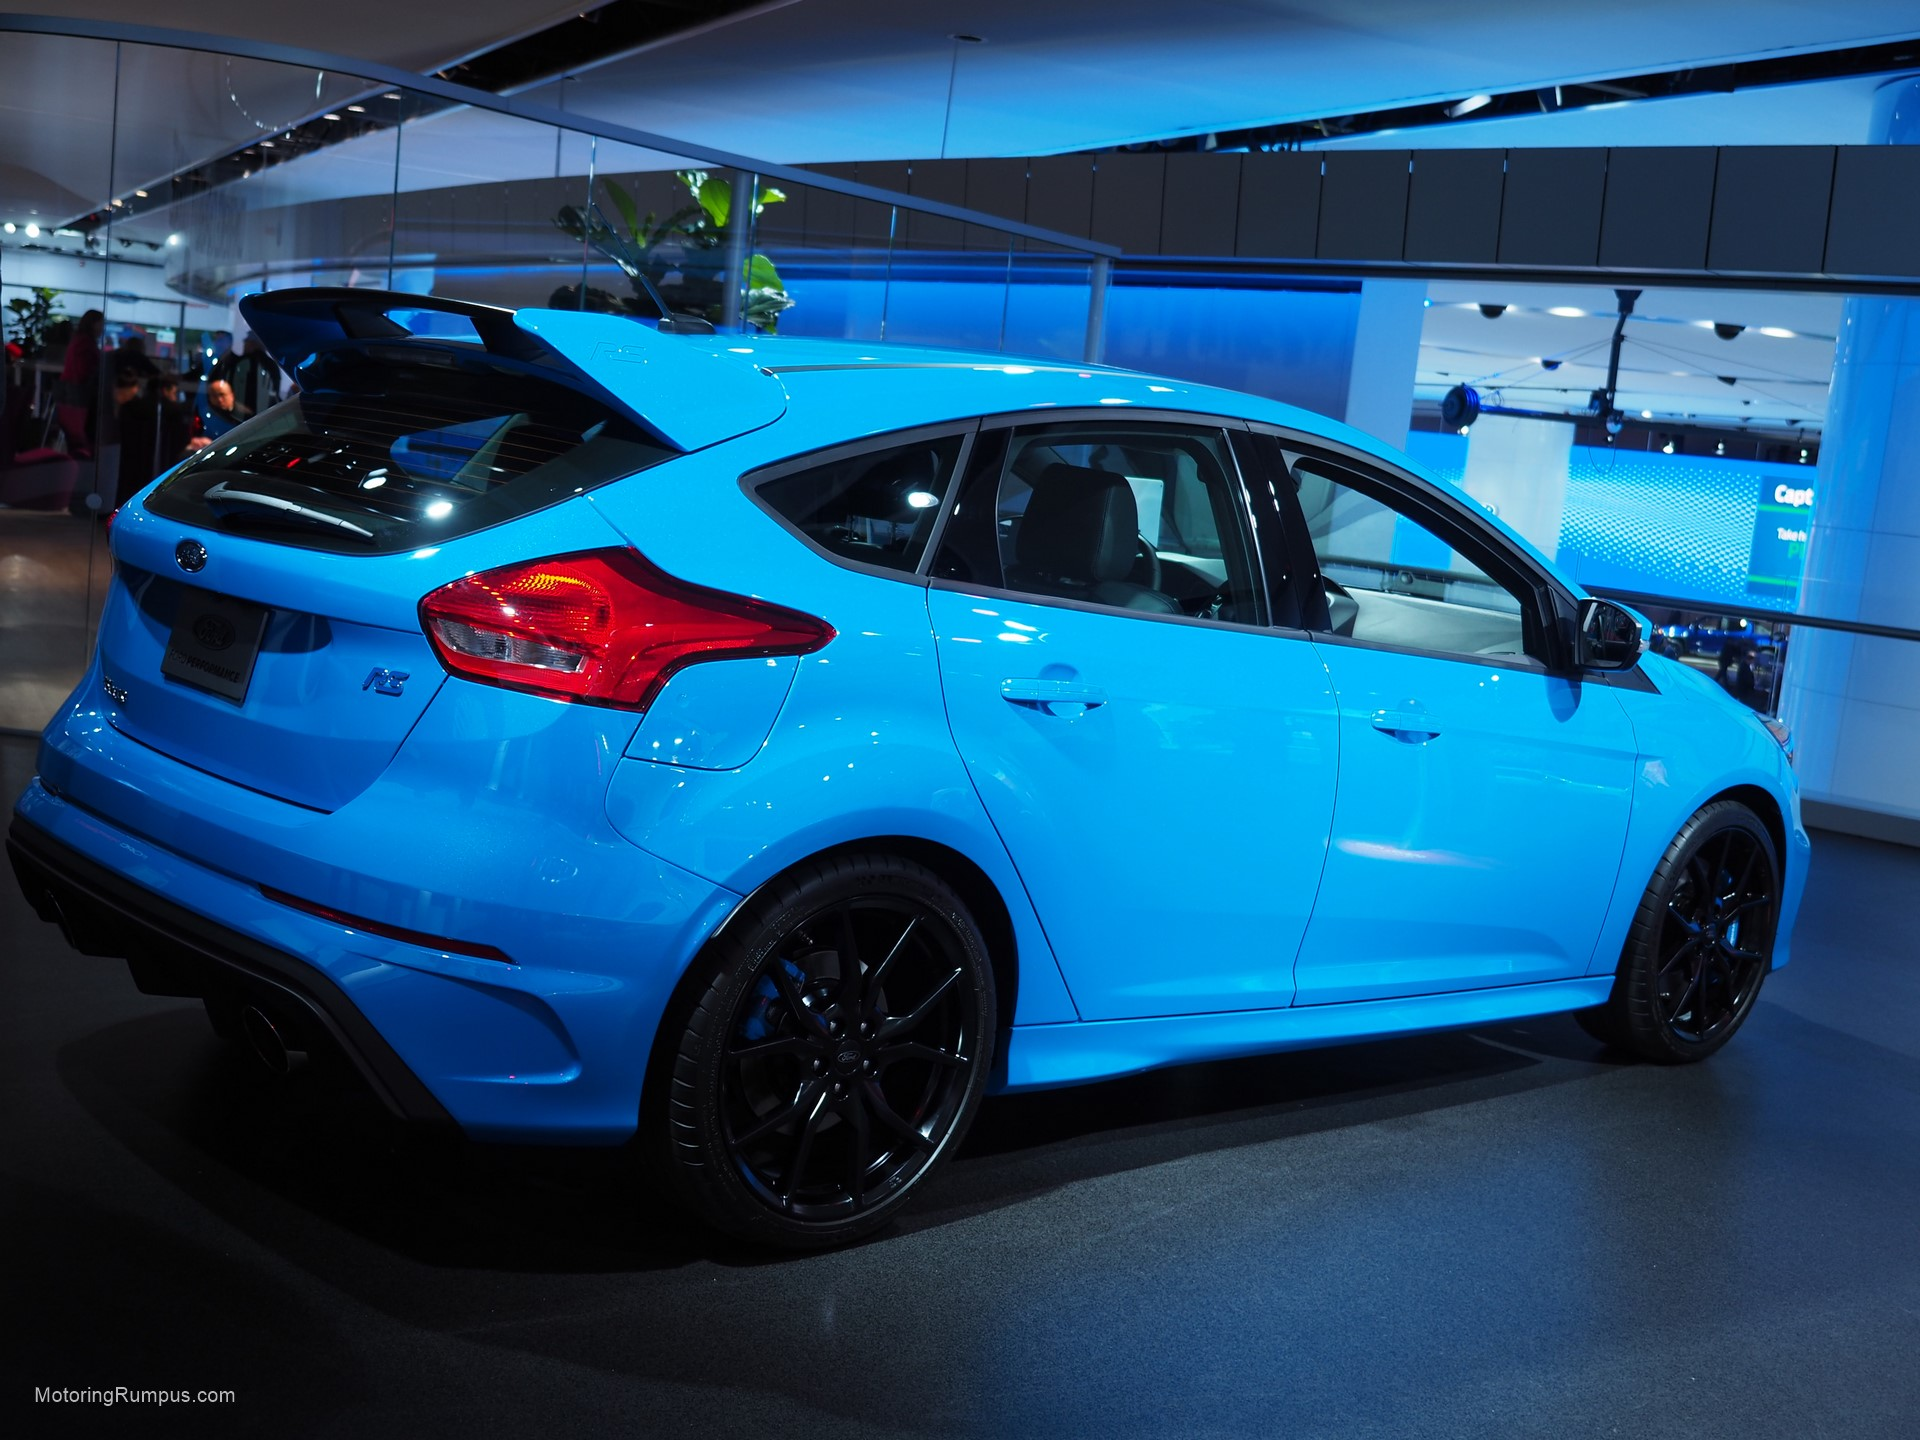 2016 naias ford focus rs nitrous blue motoring rumpus. Black Bedroom Furniture Sets. Home Design Ideas